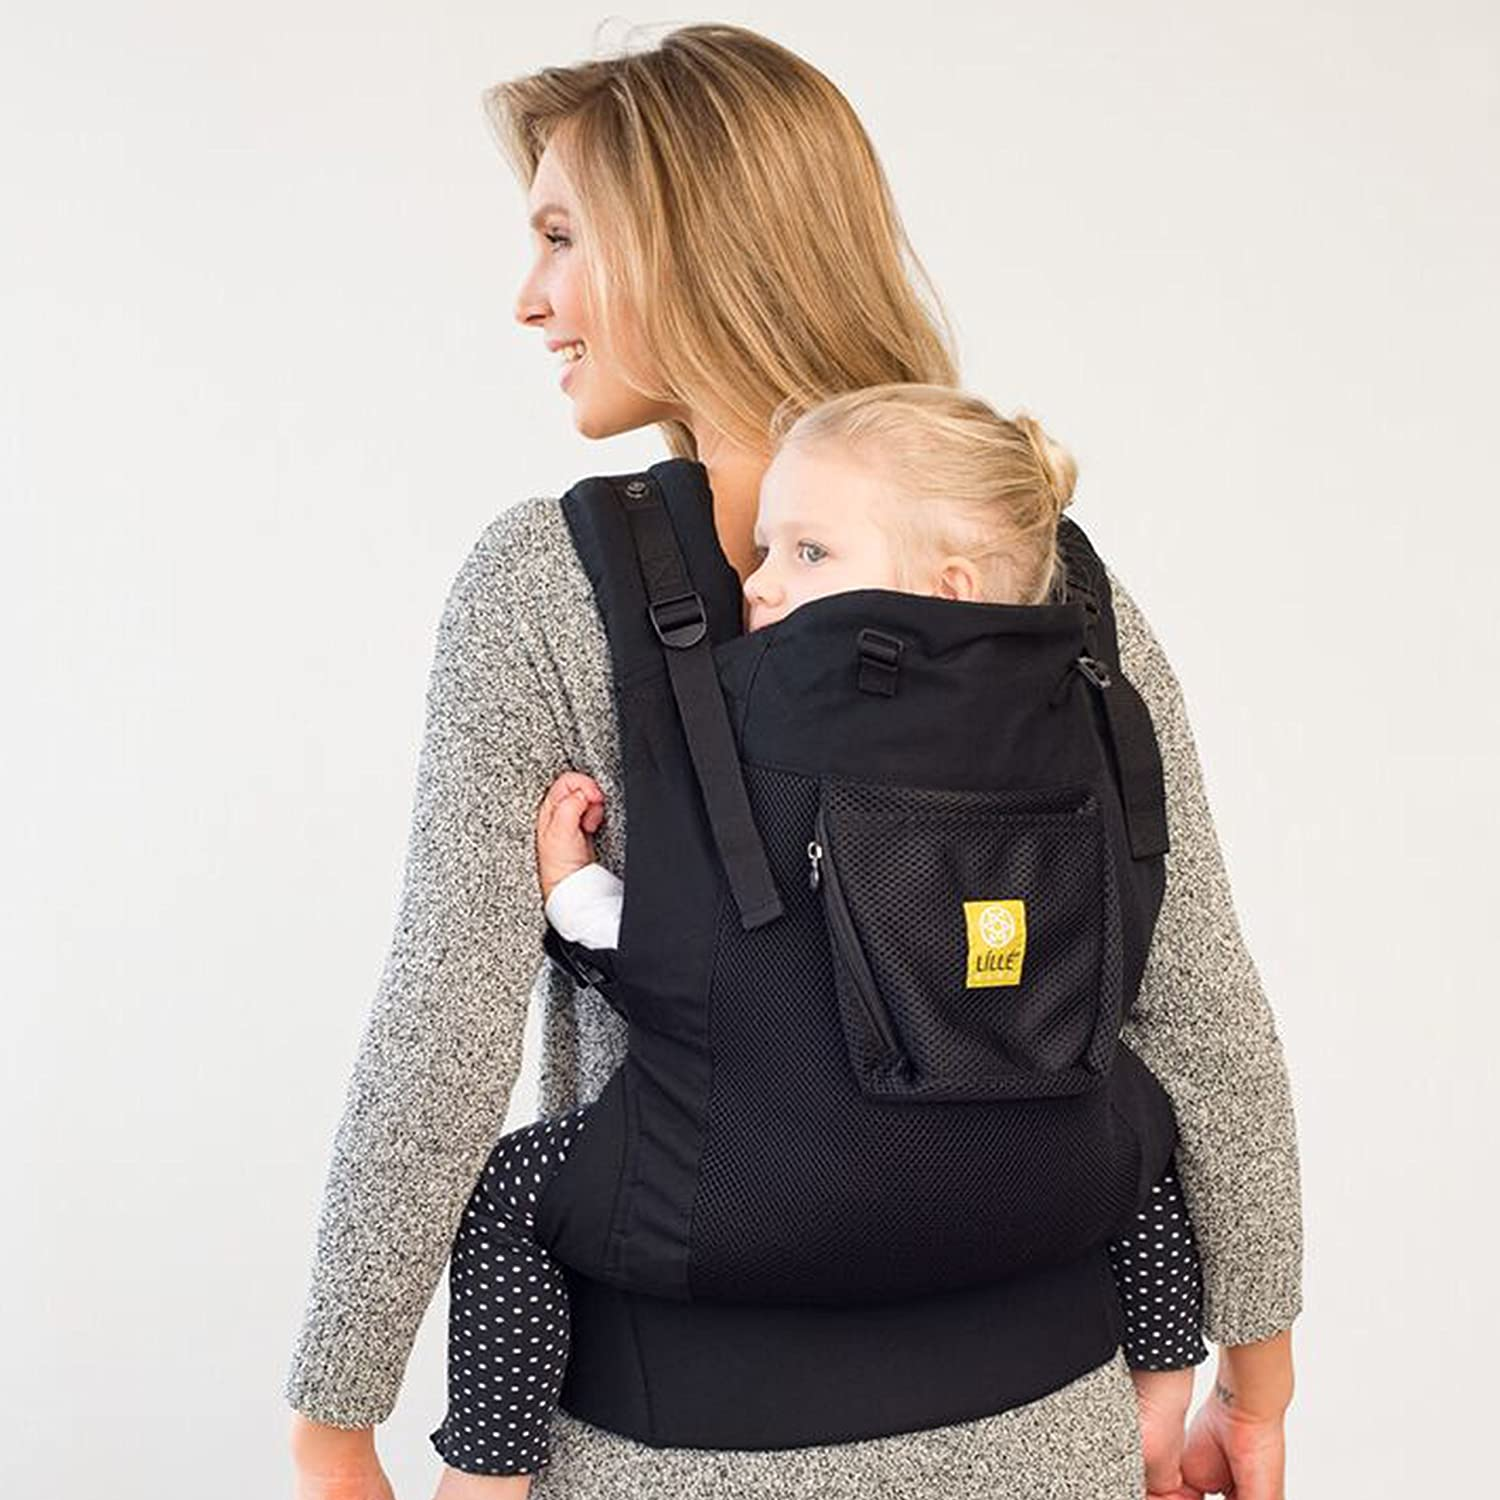 LILLEbaby 3 in 1 CarryOn Toddler Carrier - Air - Charcoal Berry CO-4A-104B-N